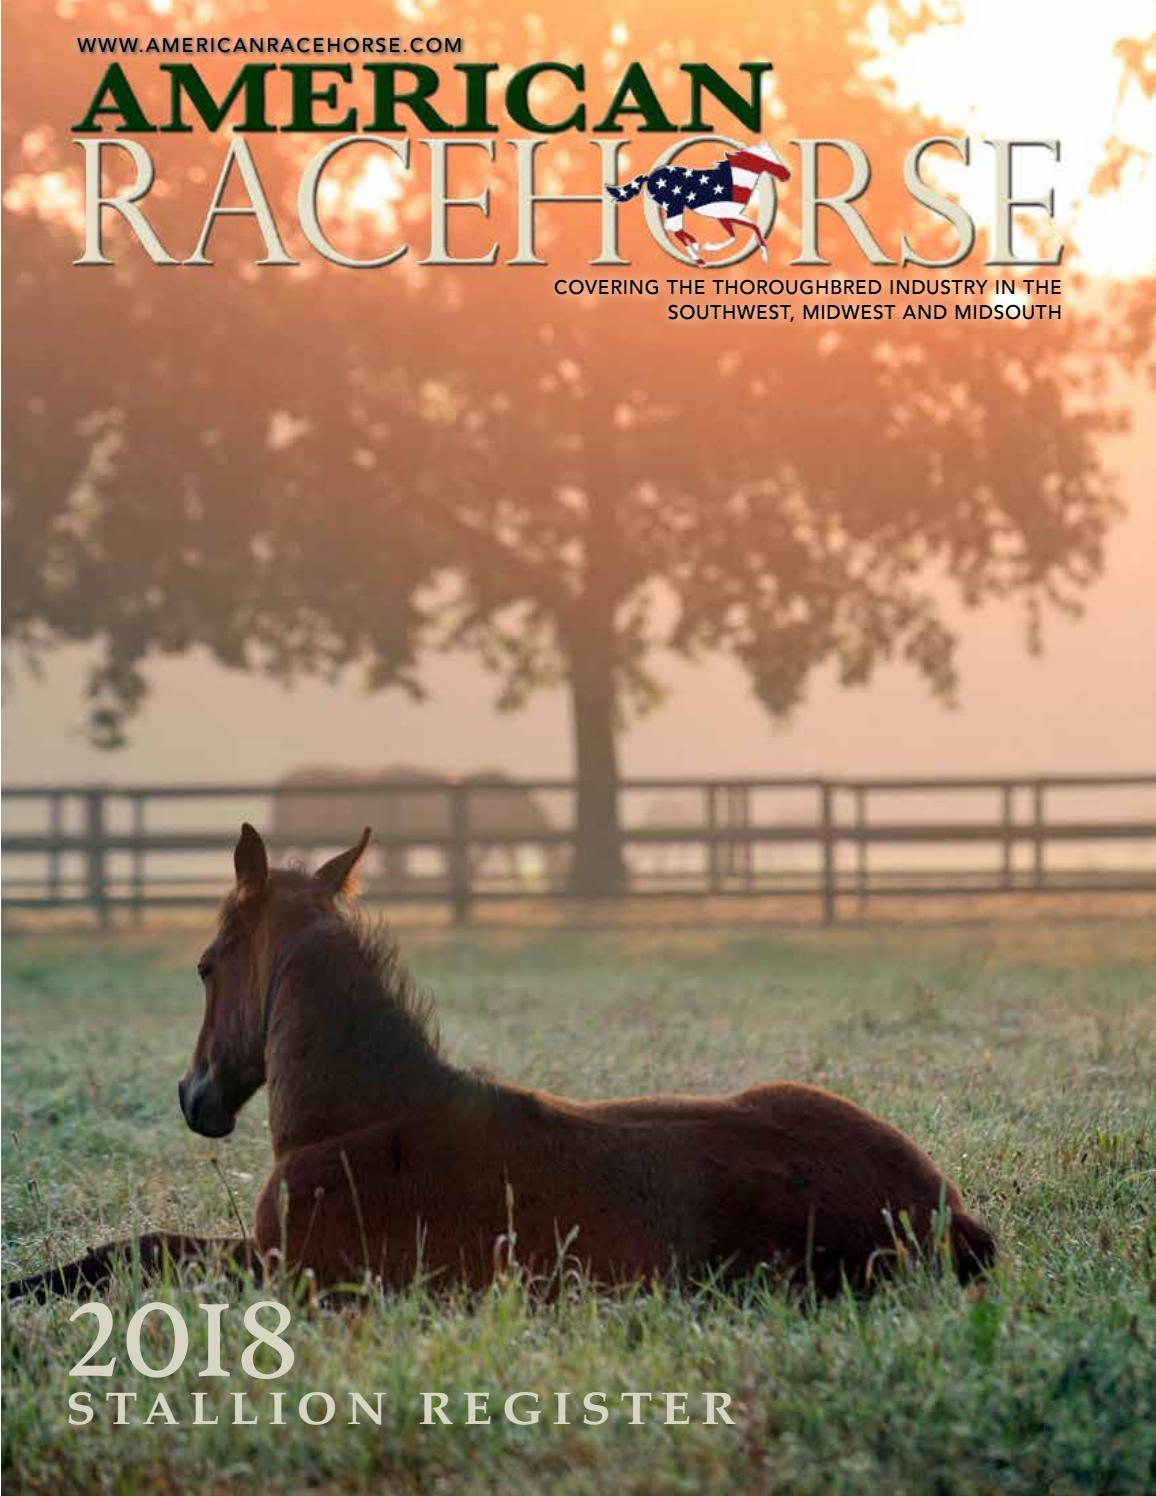 acf40dd6d08 2018 American Racehorse Stallion Register by American Racehorse (formerly  Southern Racehorse) - issuu